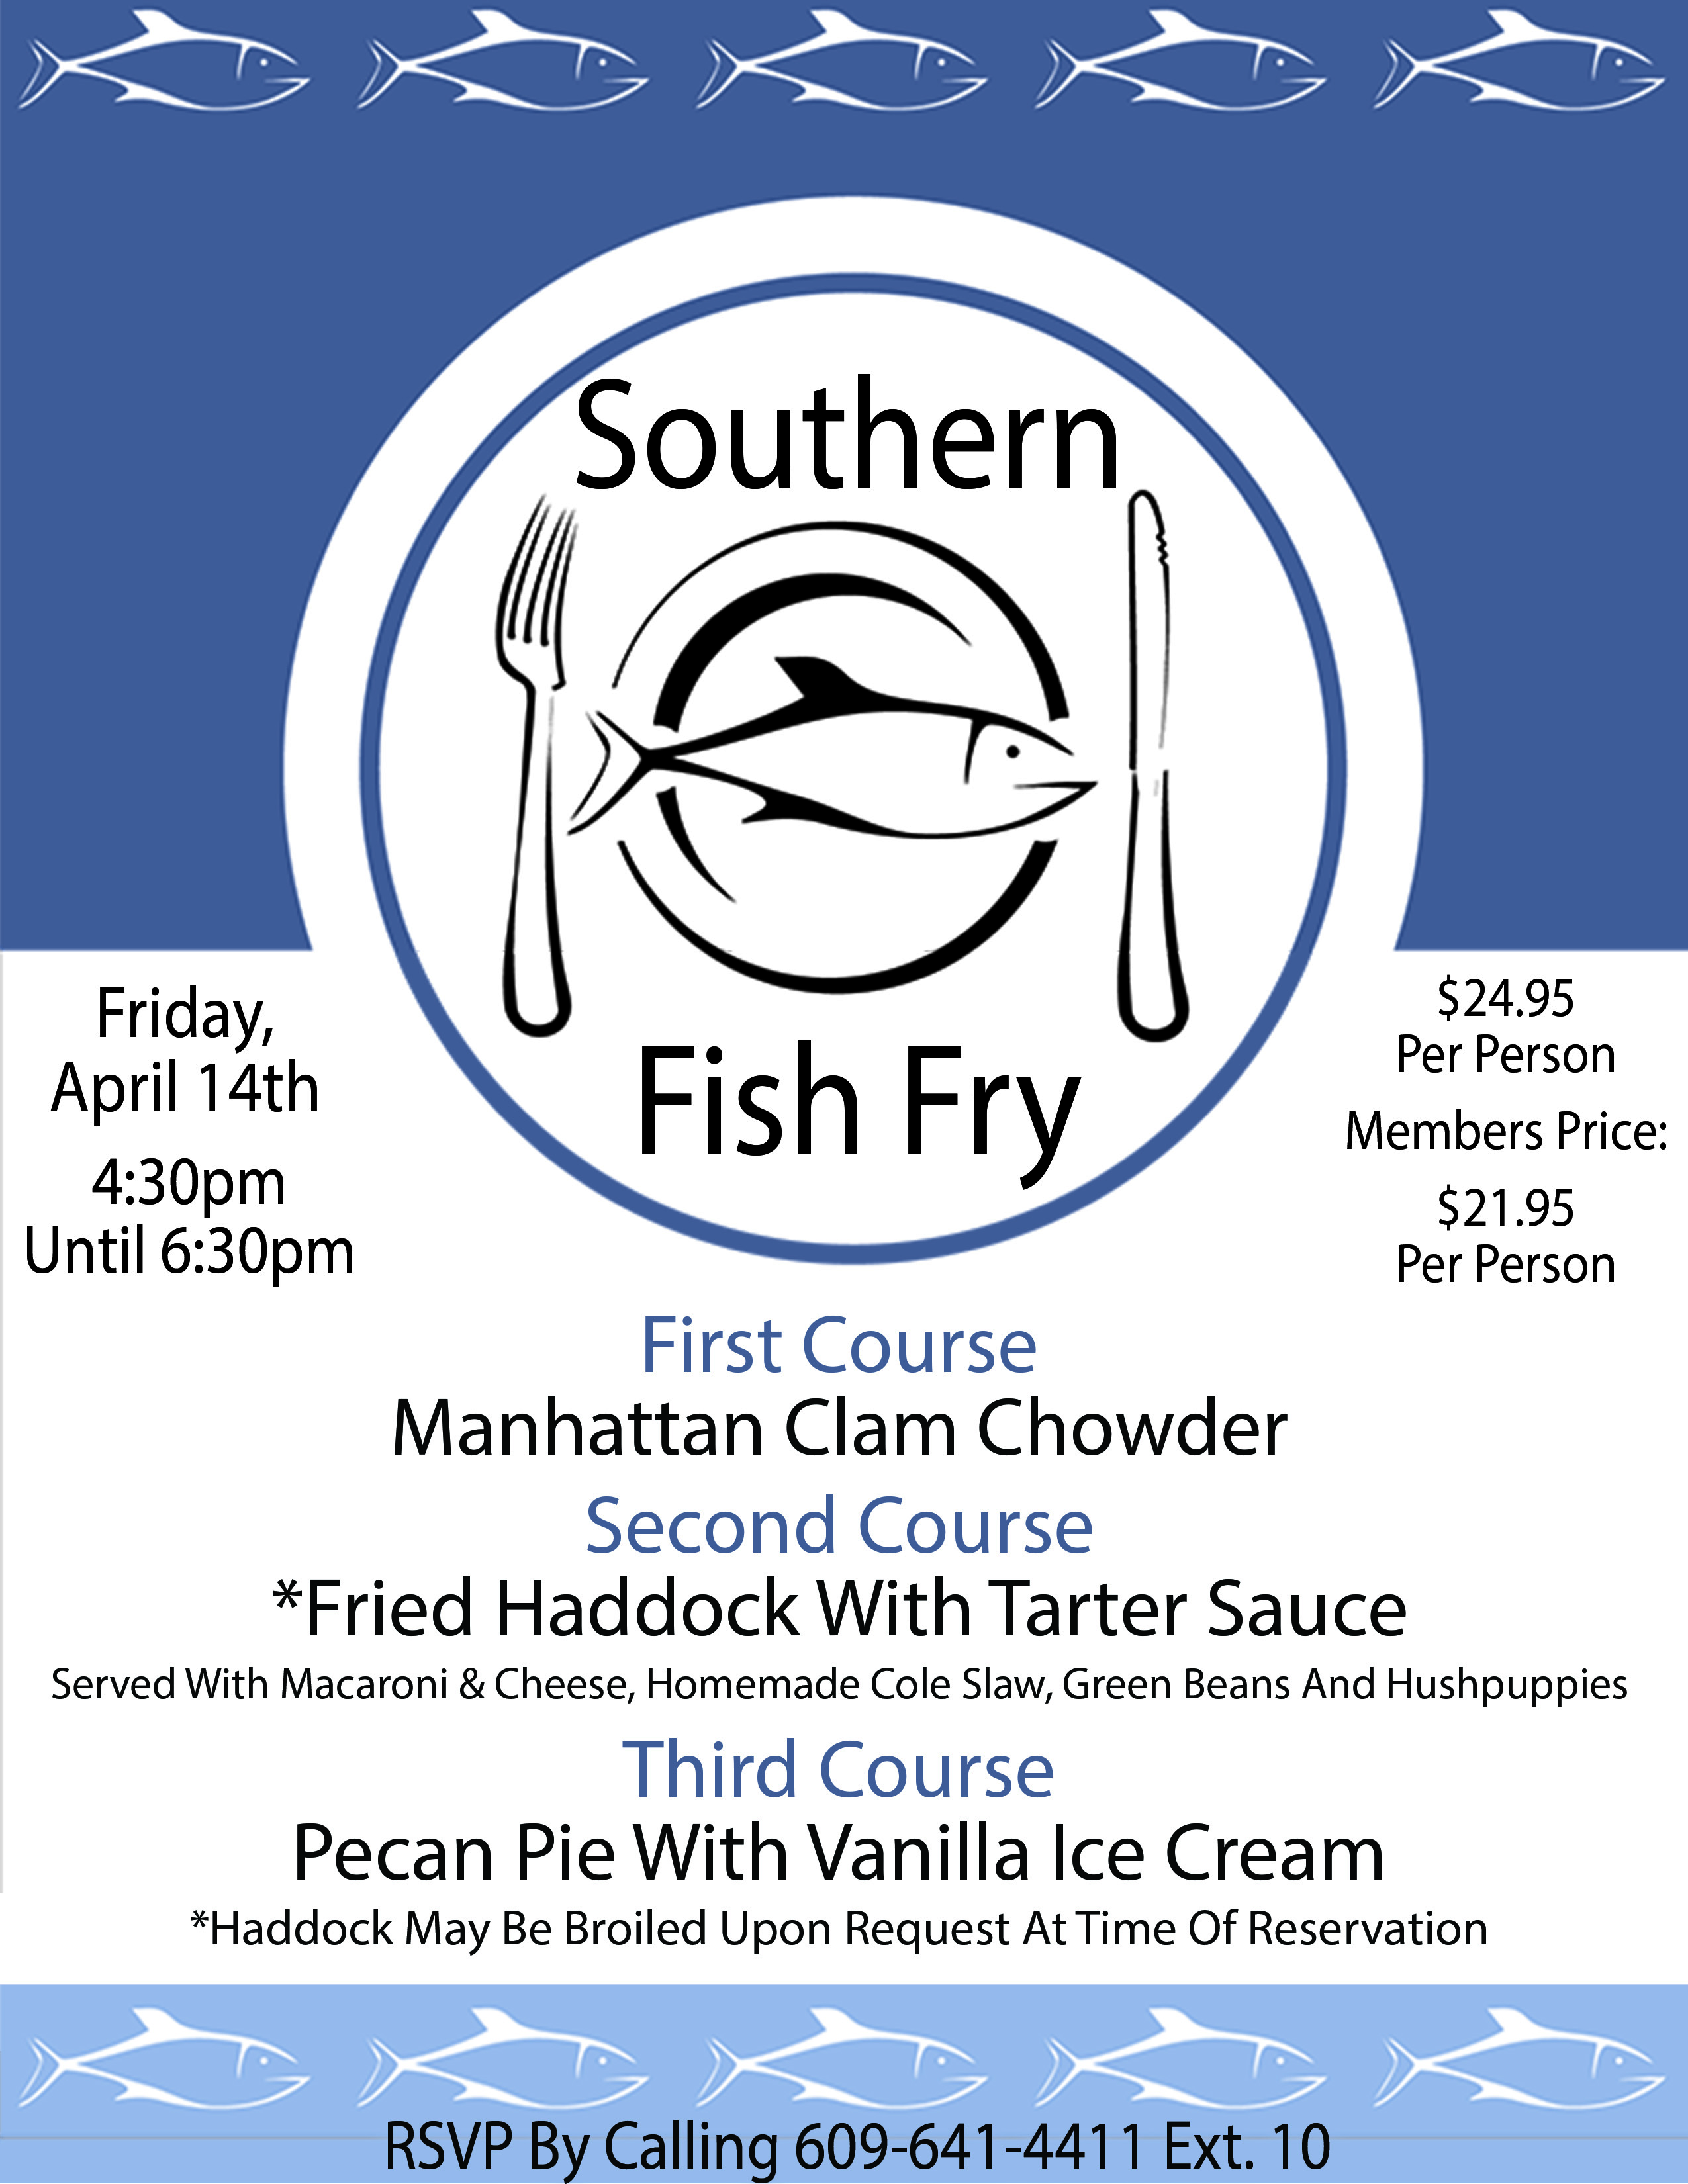 southern_fish_fry